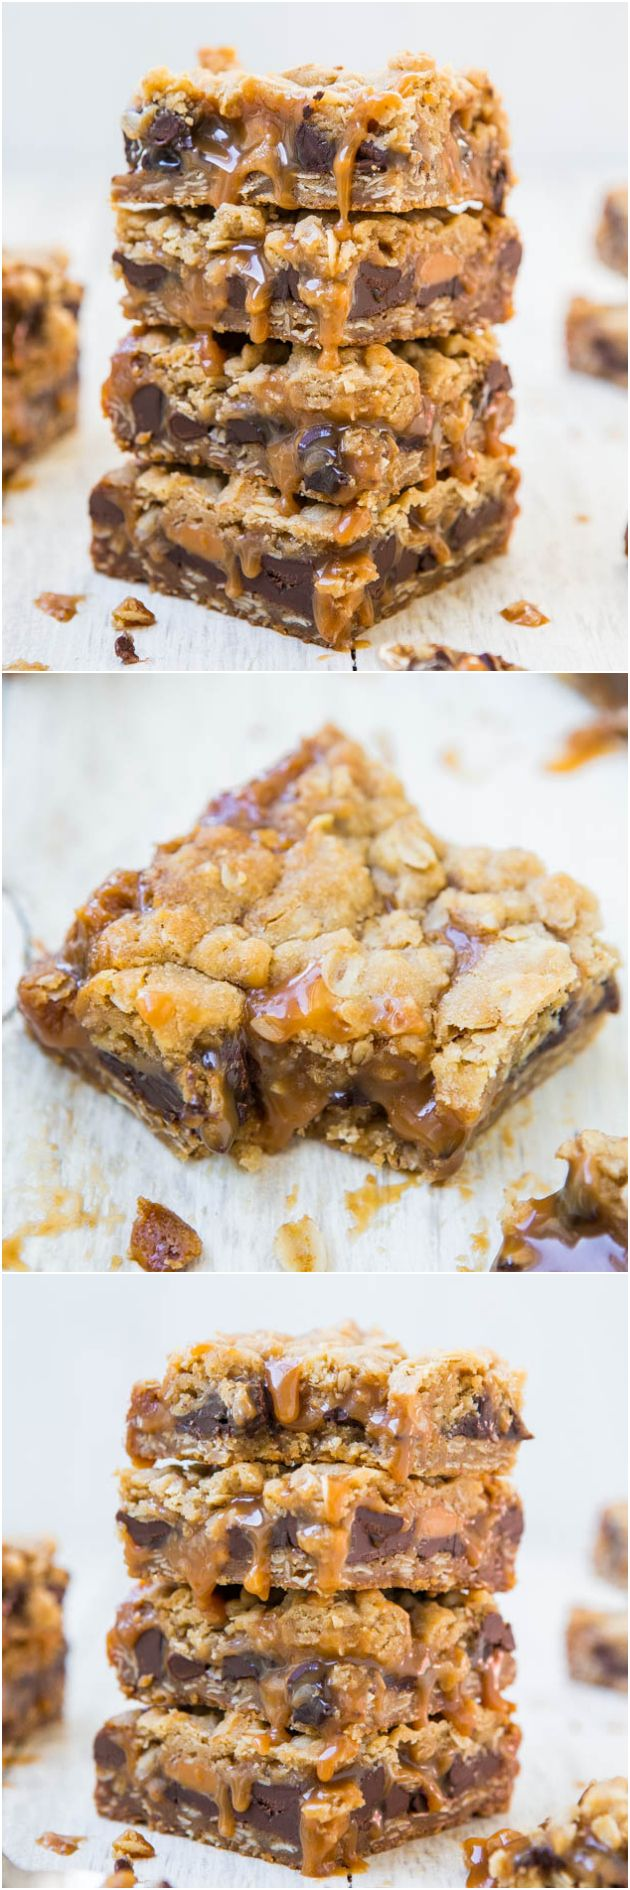 Carmelitas - For the serious caramel lover, these soft and chewy bars are stuffed with chocolate and just dripping with caramel! Easy one-bowl, no-mixer recipe at averiecooks.com